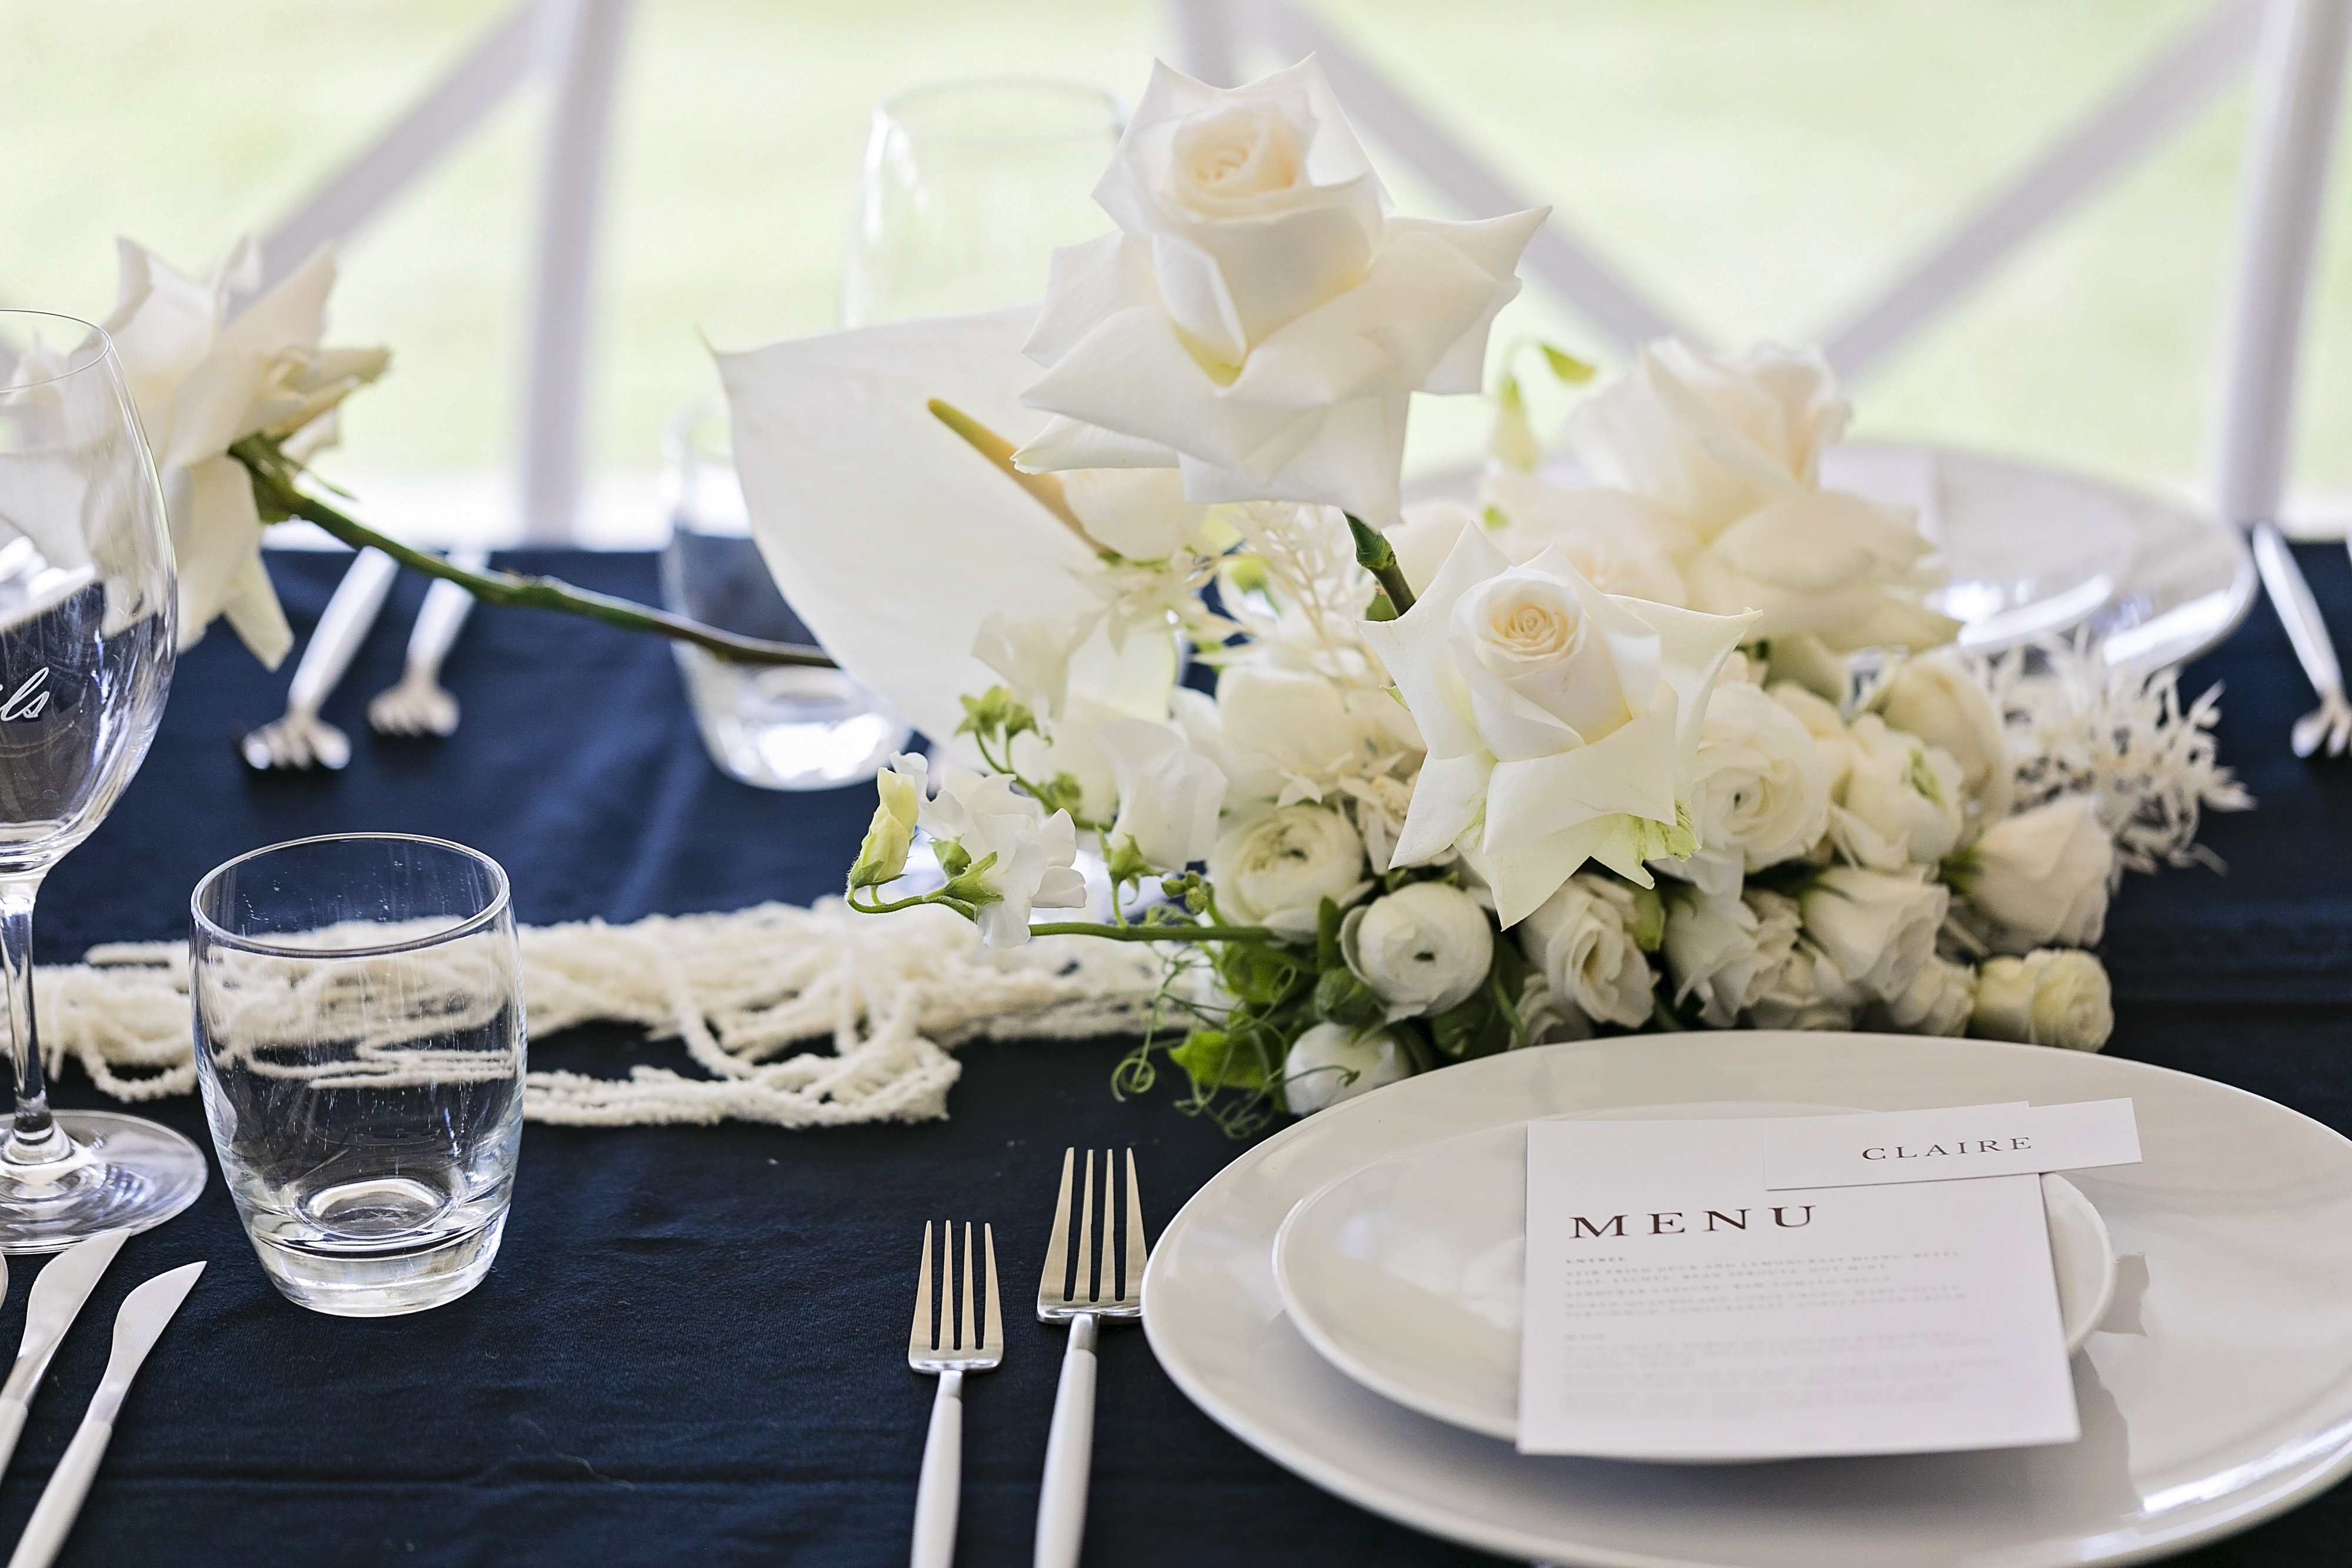 Costal style blooms of roses in orchids with navy styling touches